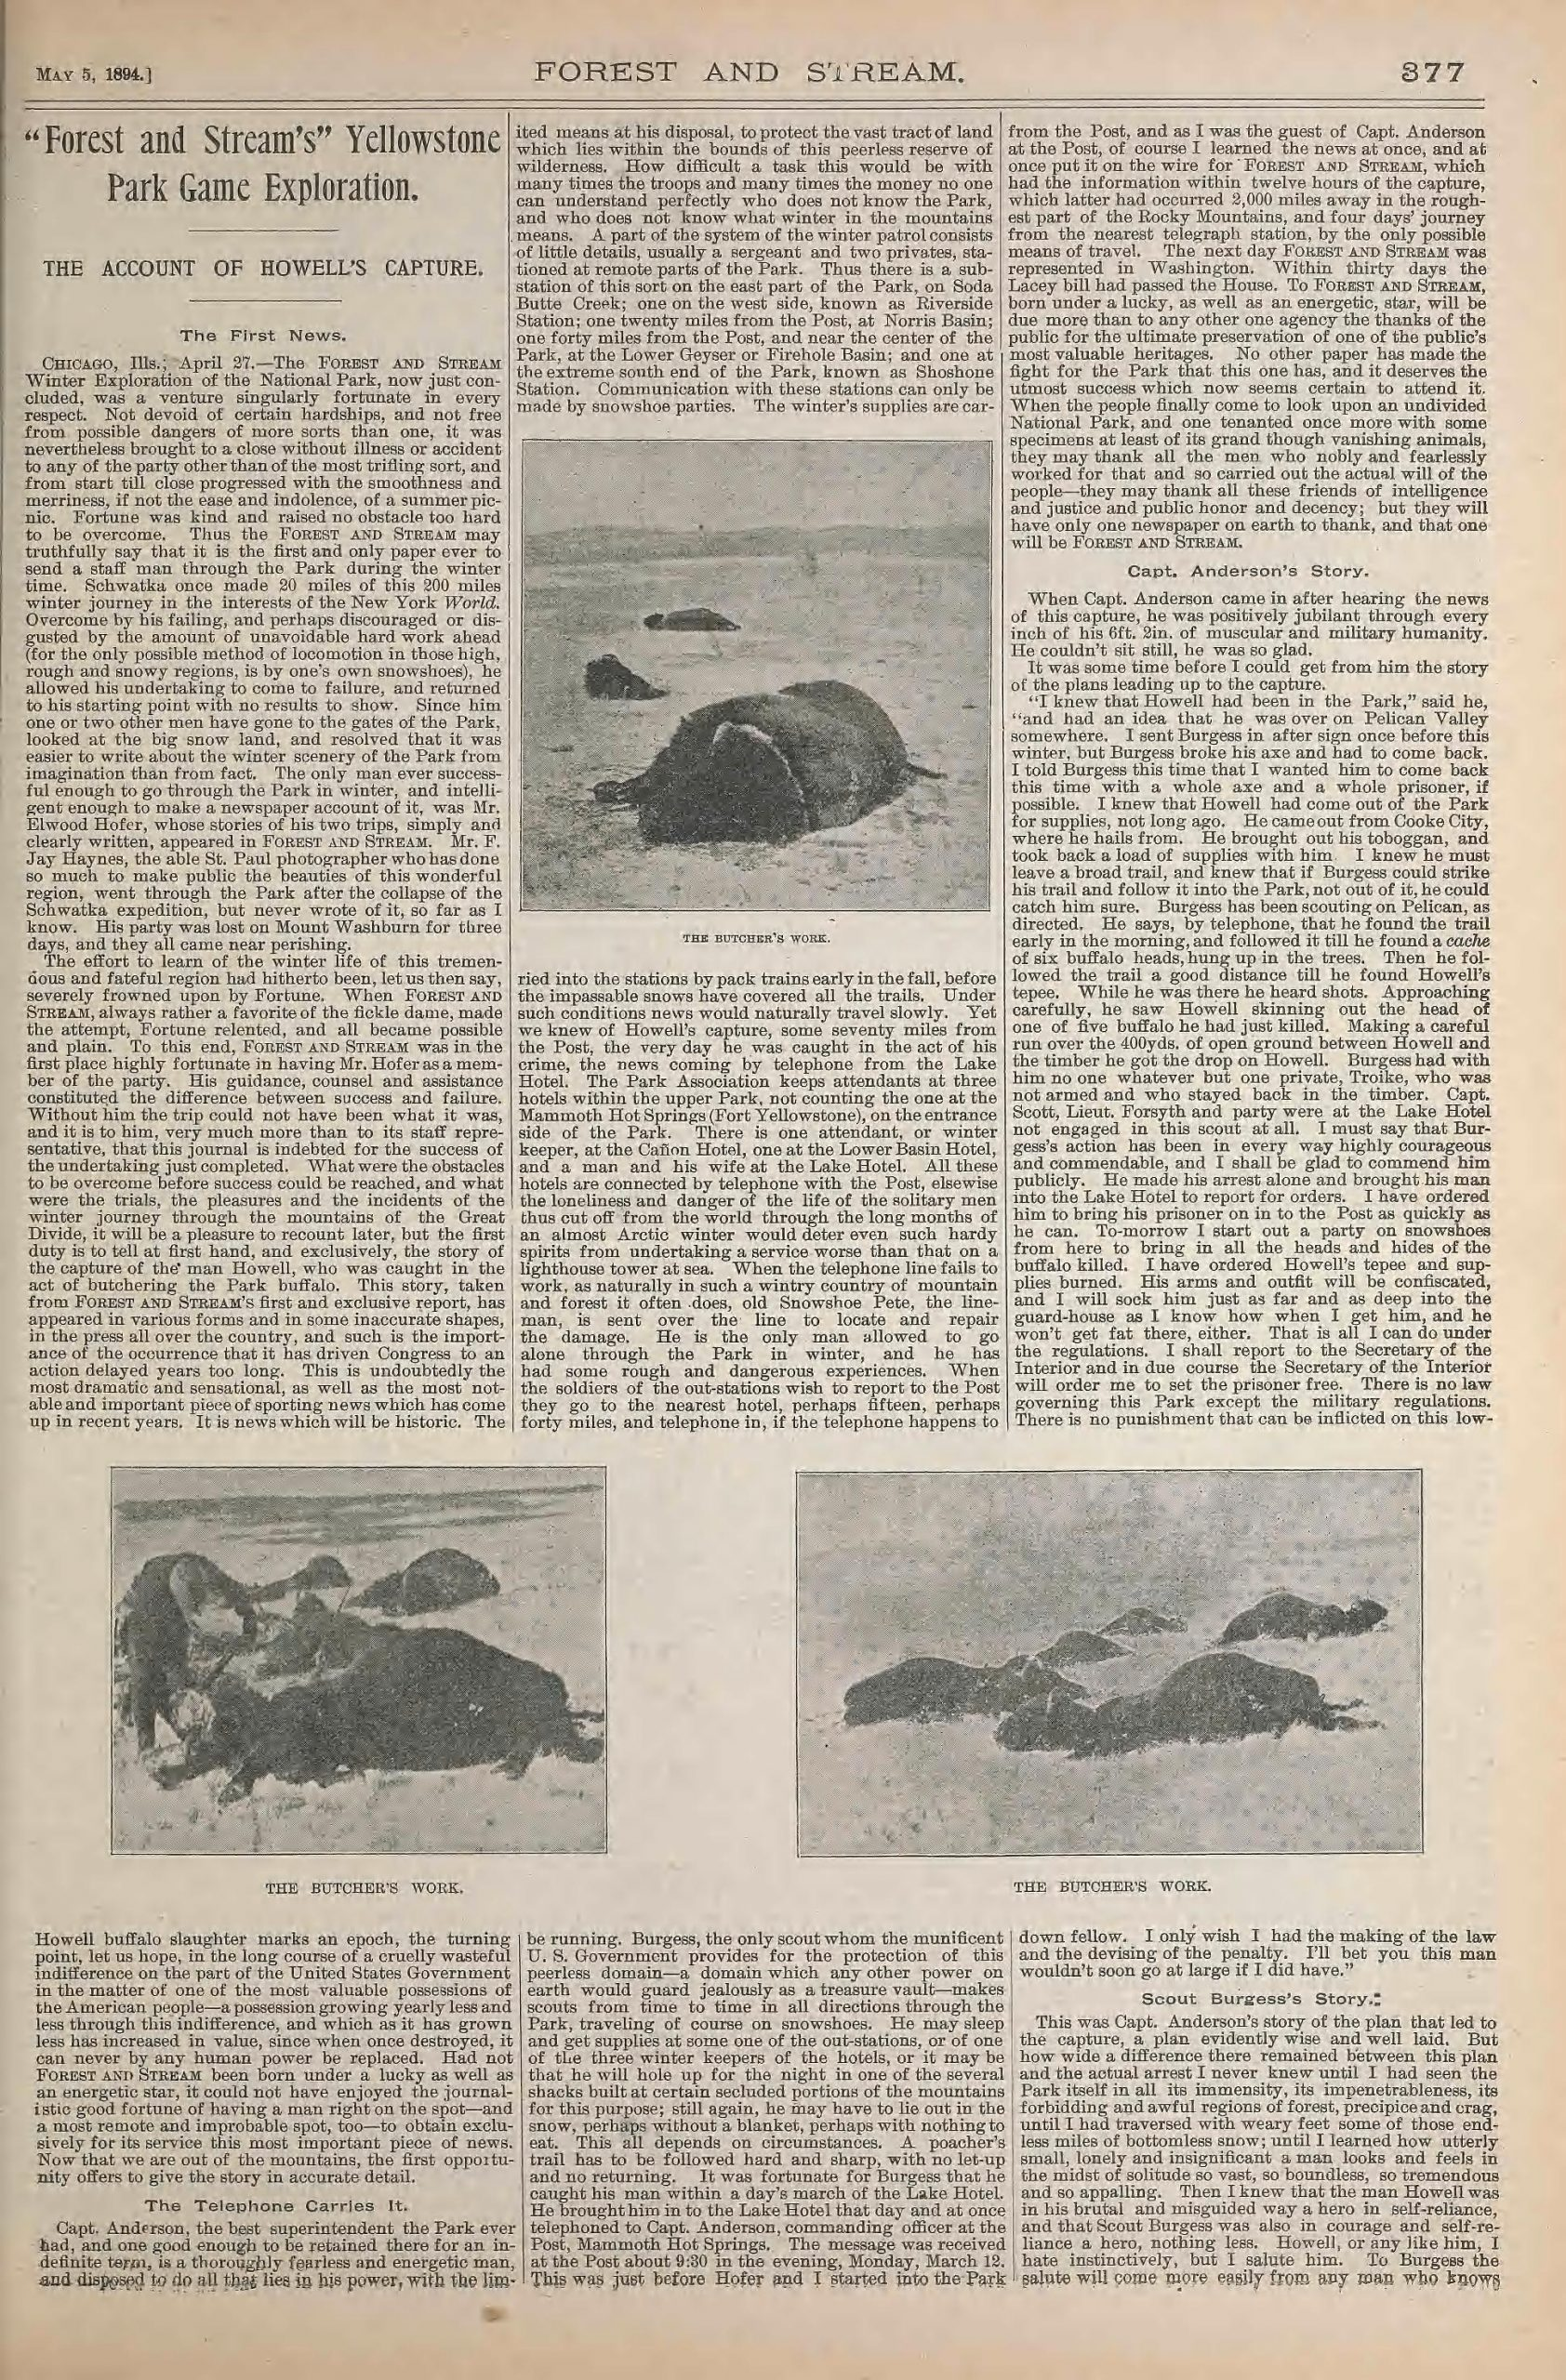 Article from Forrest and Stream with photographs of slain bison.